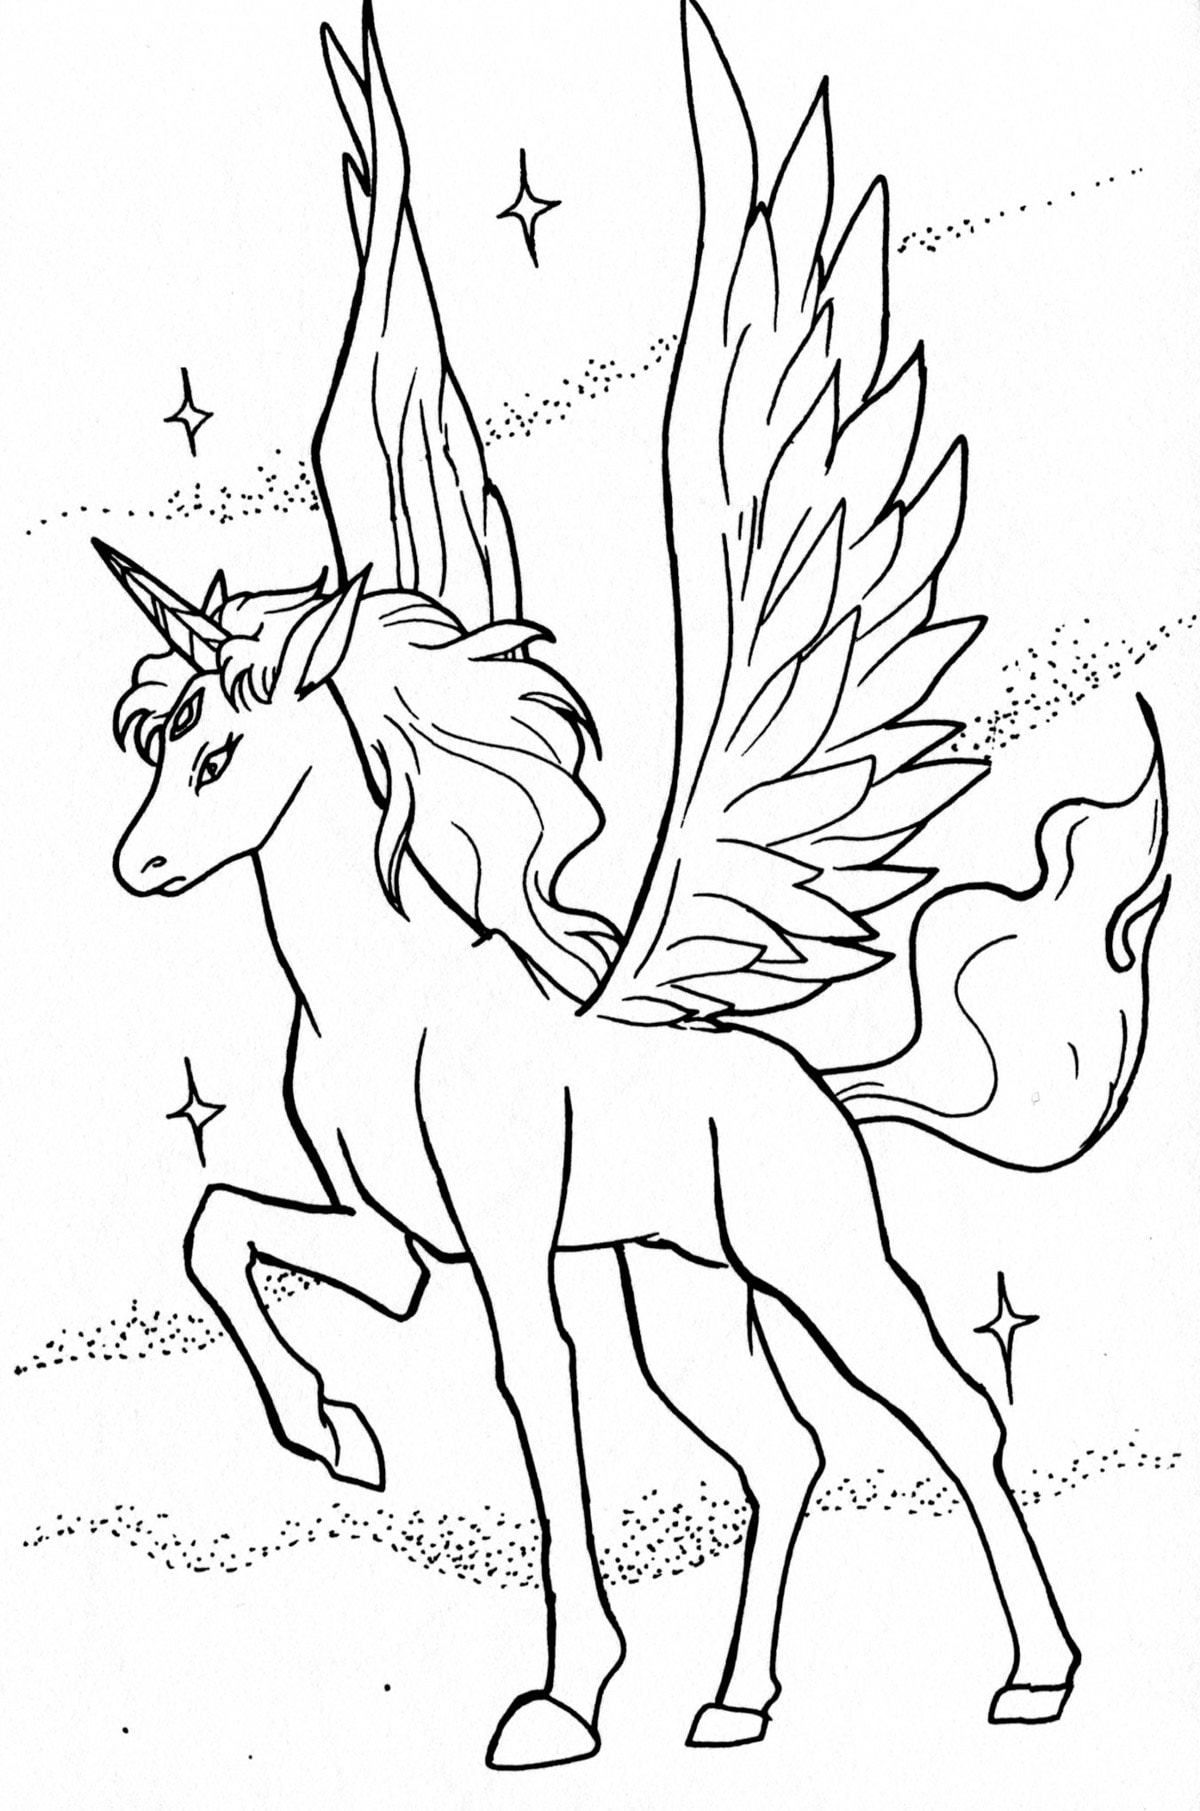 unicorn pictures for coloring unicorn coloring pages free printable coloring home unicorn pictures coloring for